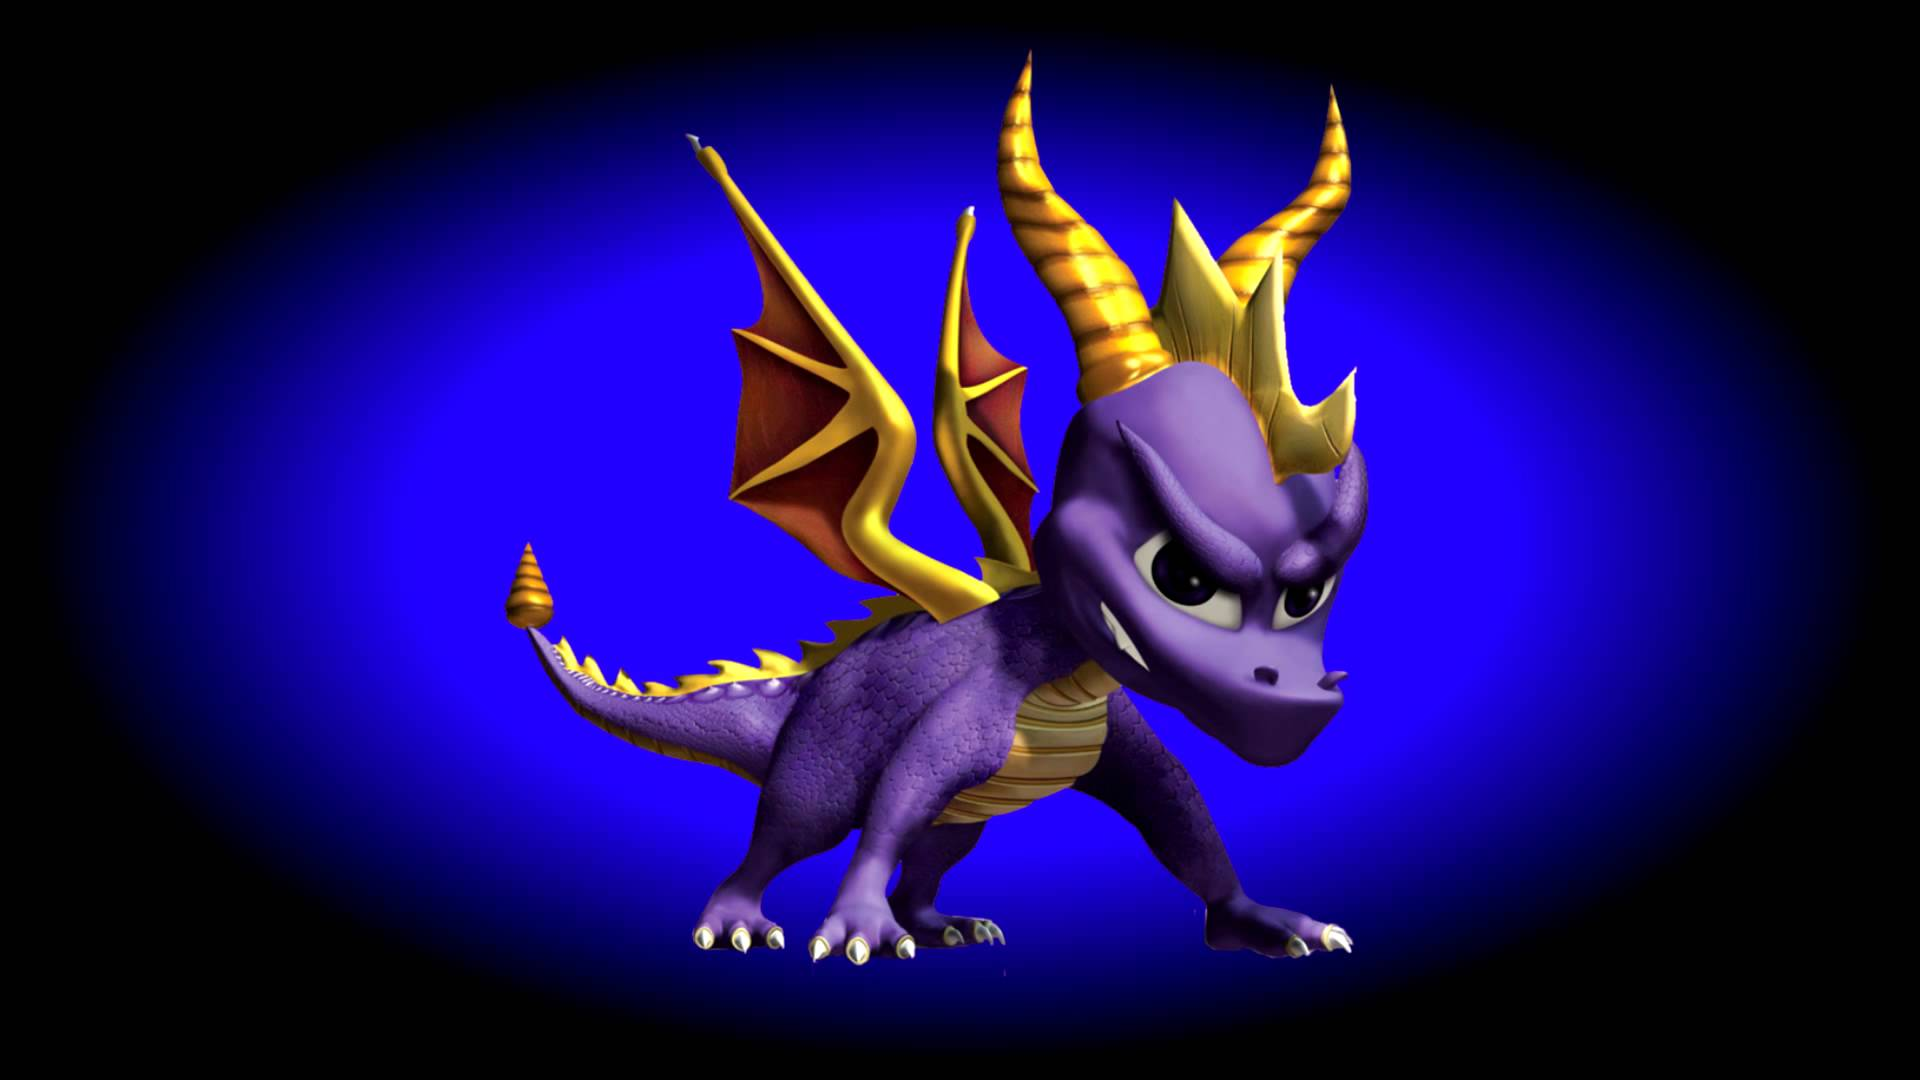 spyro the dragon wallpapers wallpaper cave